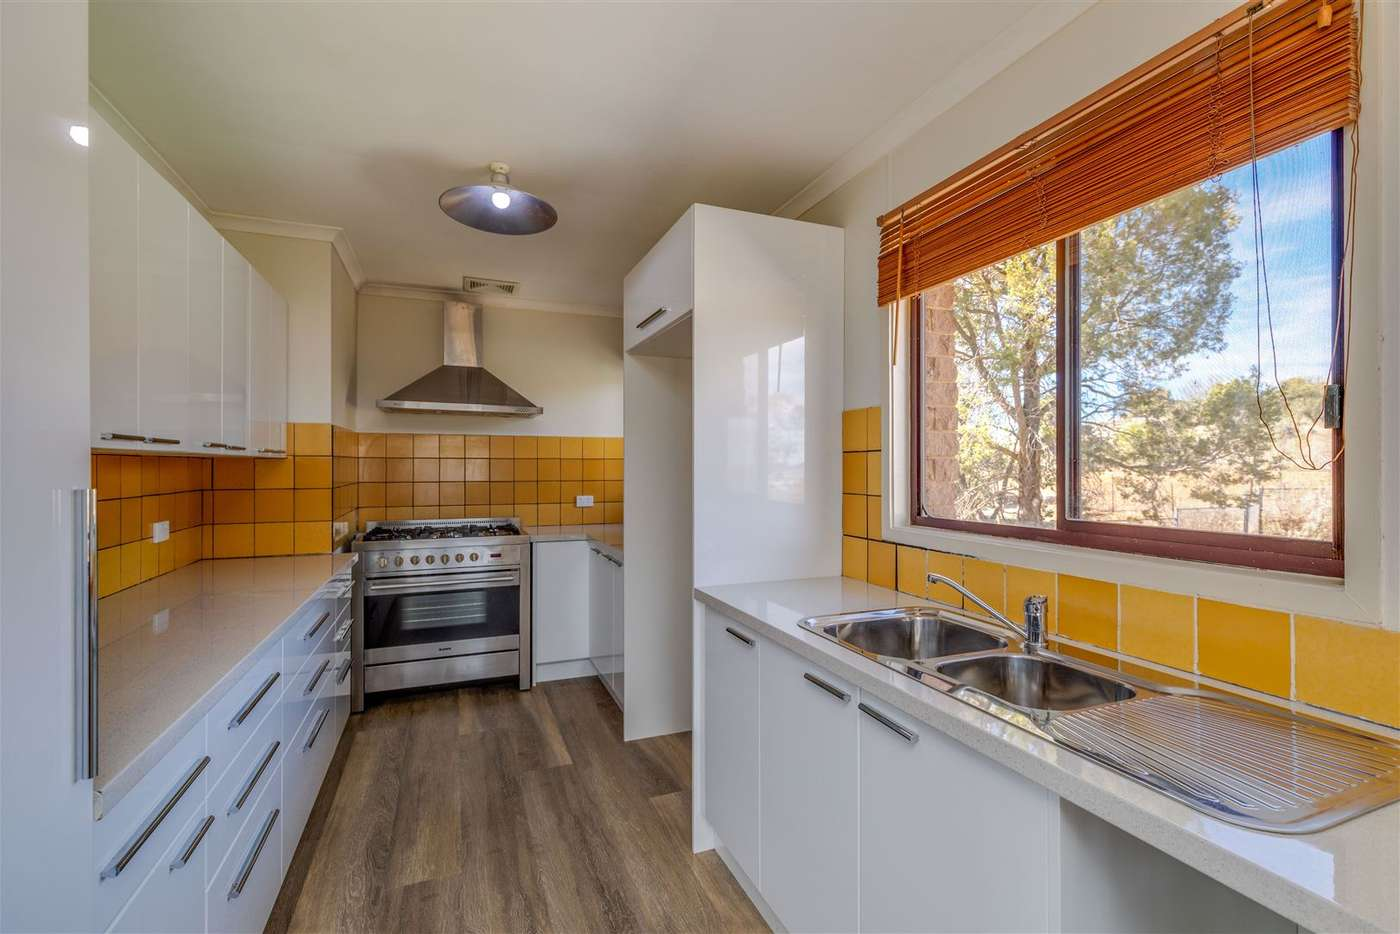 Fifth view of Homely ruralOther listing, Lothlorien/289 Wattle Hills Road, Maxwell via, Wagga Wagga NSW 2650